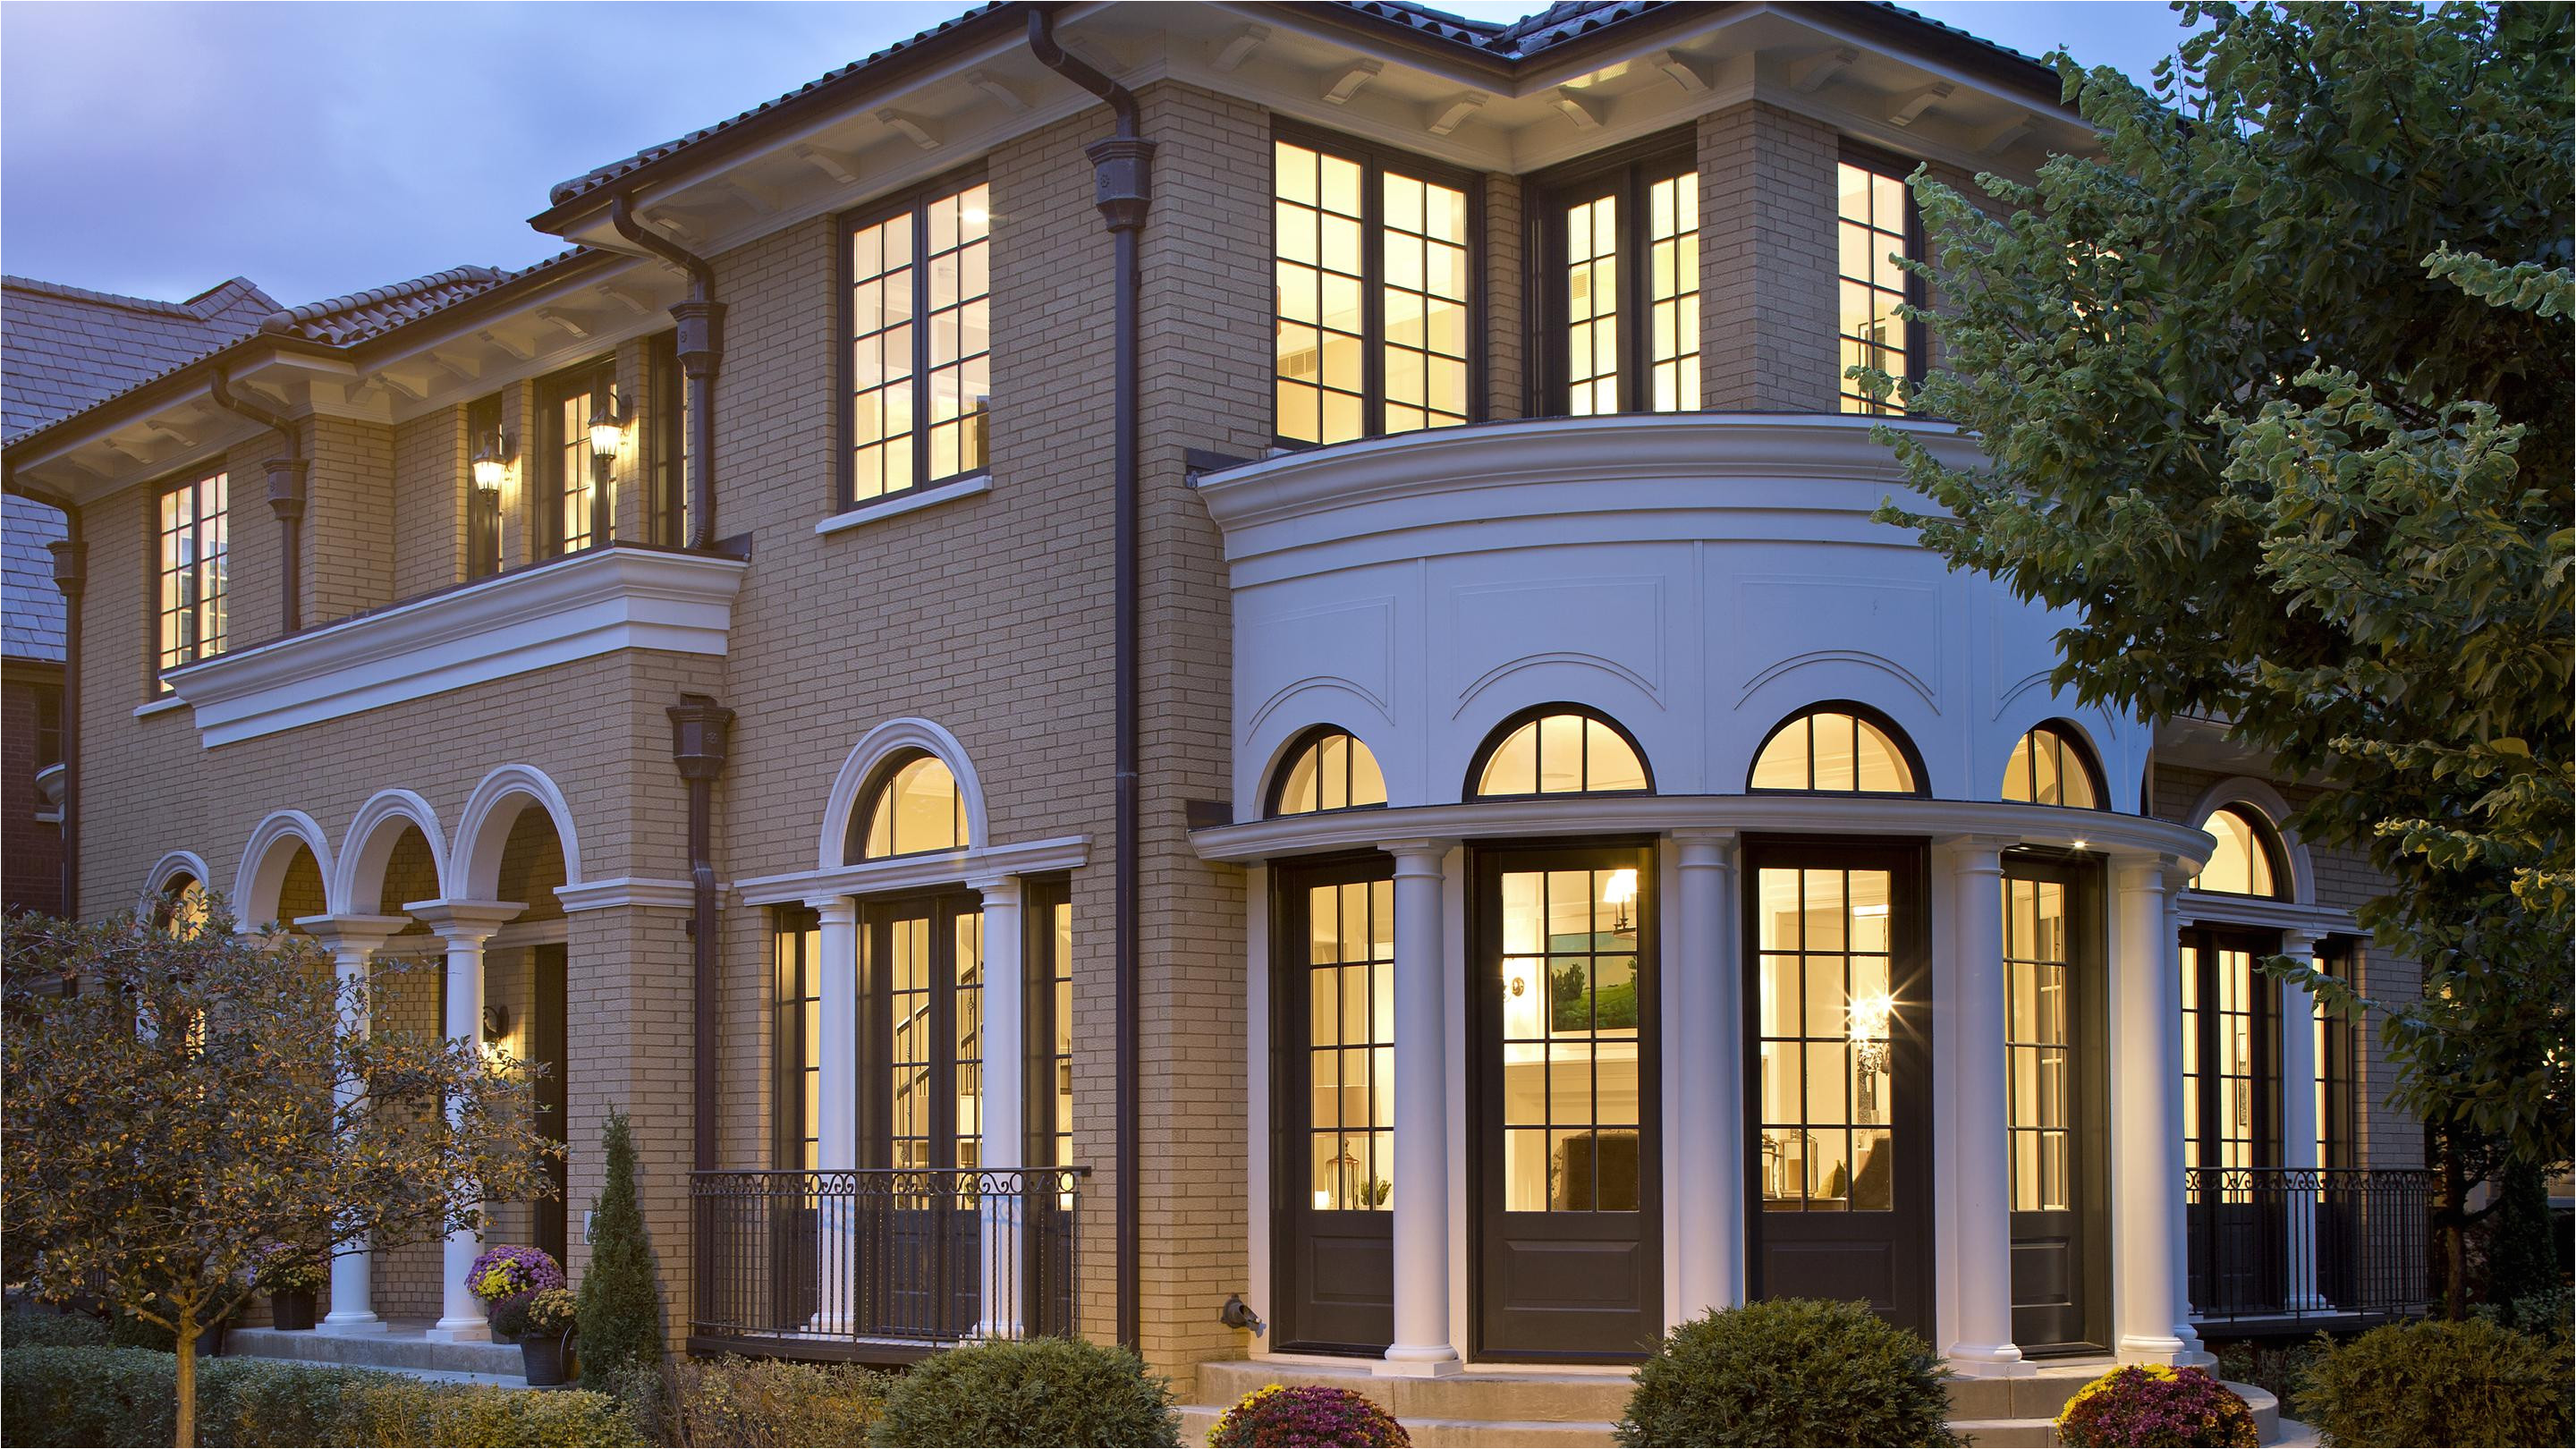 Homes Rent to Own by Owner In Louisville Ky Louisville Business News Louisville Business First